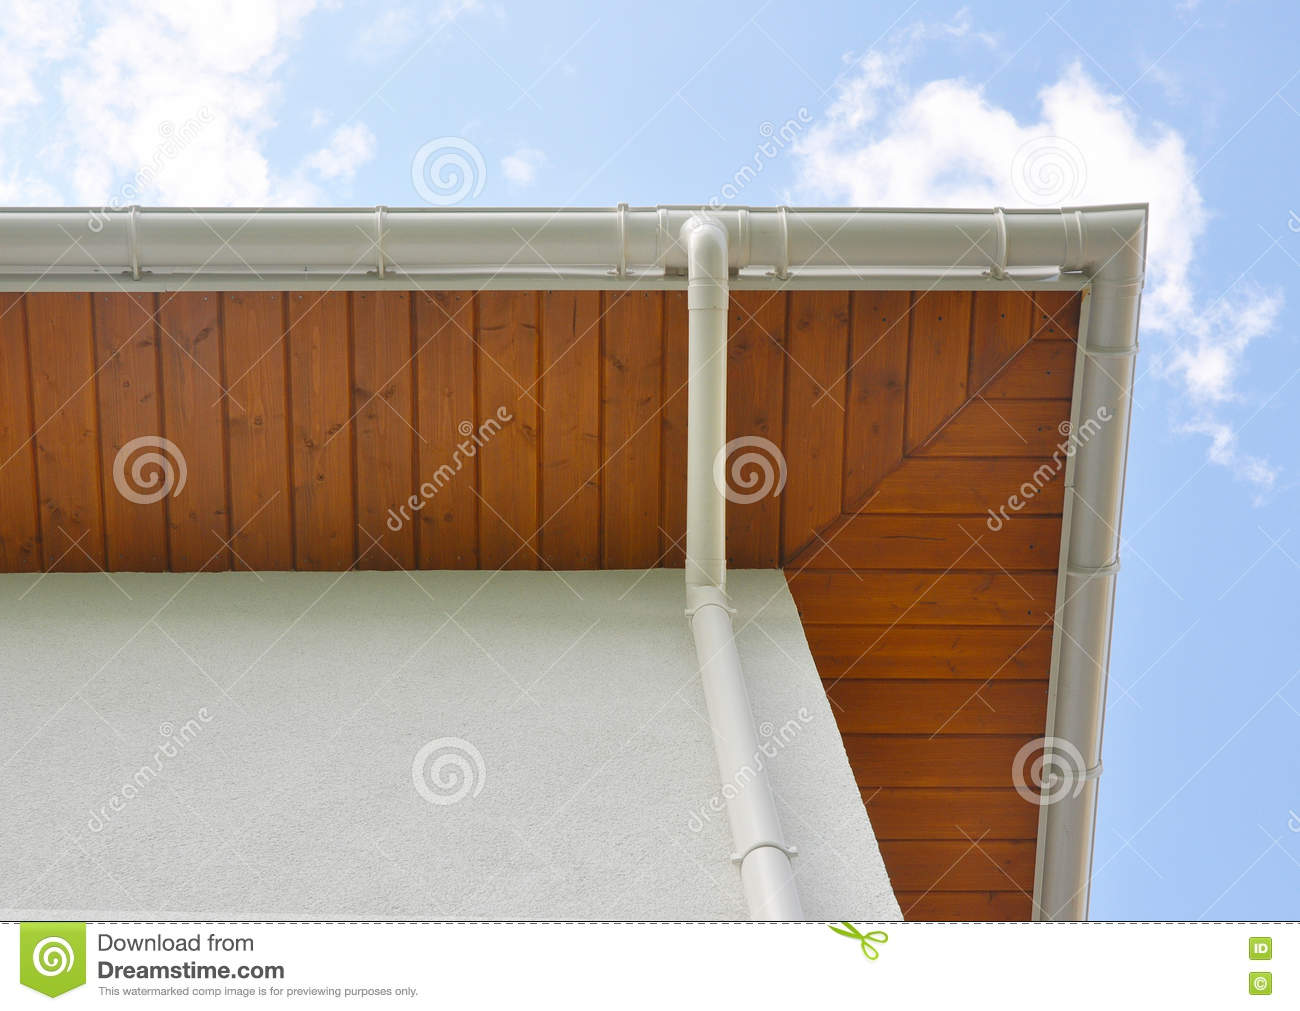 How to install a downspout in a gutter - Royalty Free Stock Photo